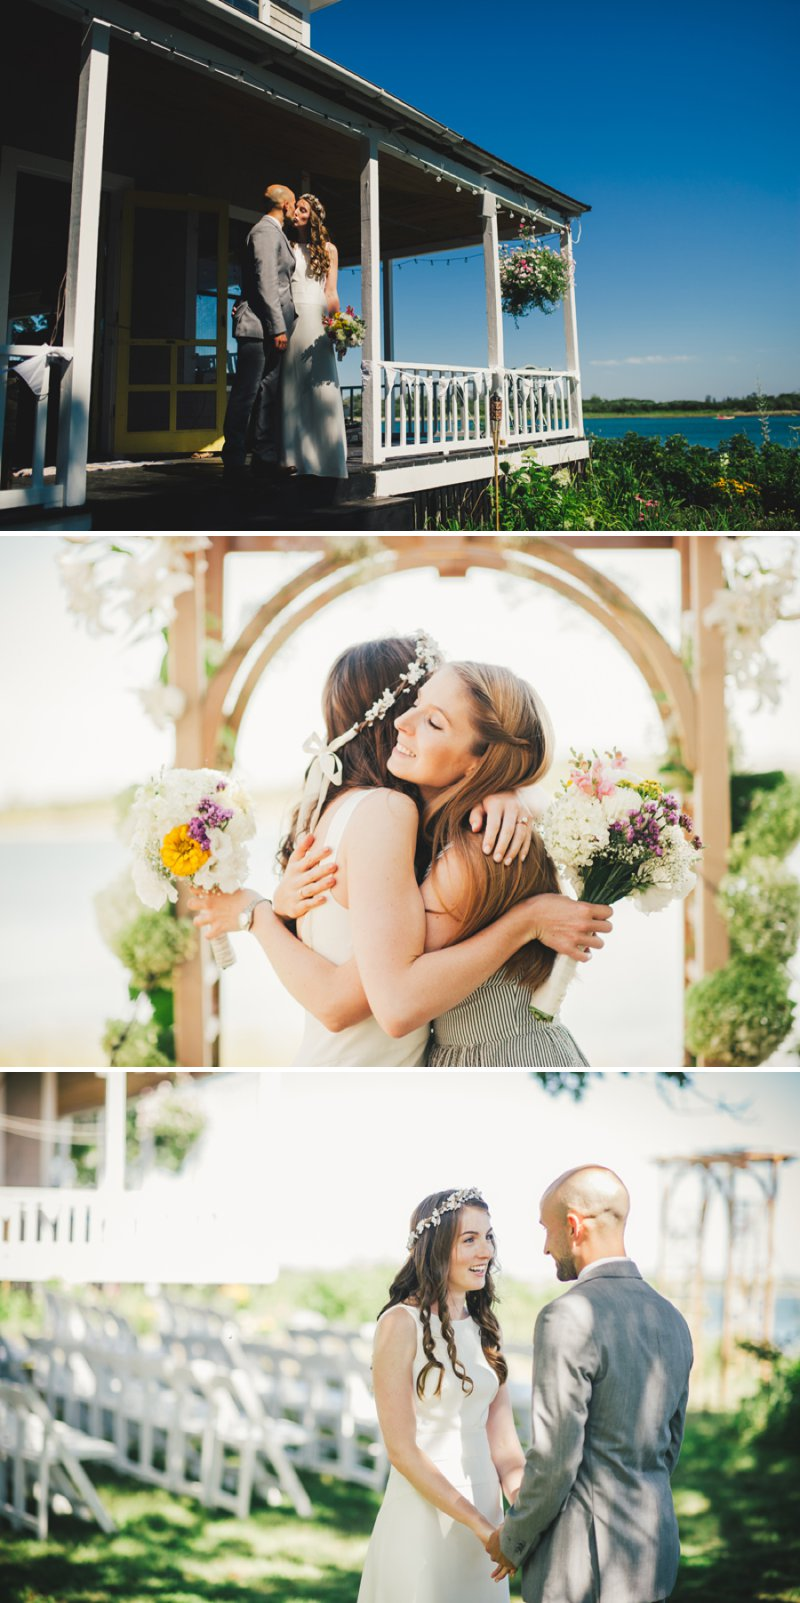 Elegant Wedding By The Sea In Maine USA With Bride In J Crew Dress And Groom In Navy Banana Republic Suit With An Outdoor Ceremony At The Brides Family Home With Beautiful Photography From Rebekah J Murray 1